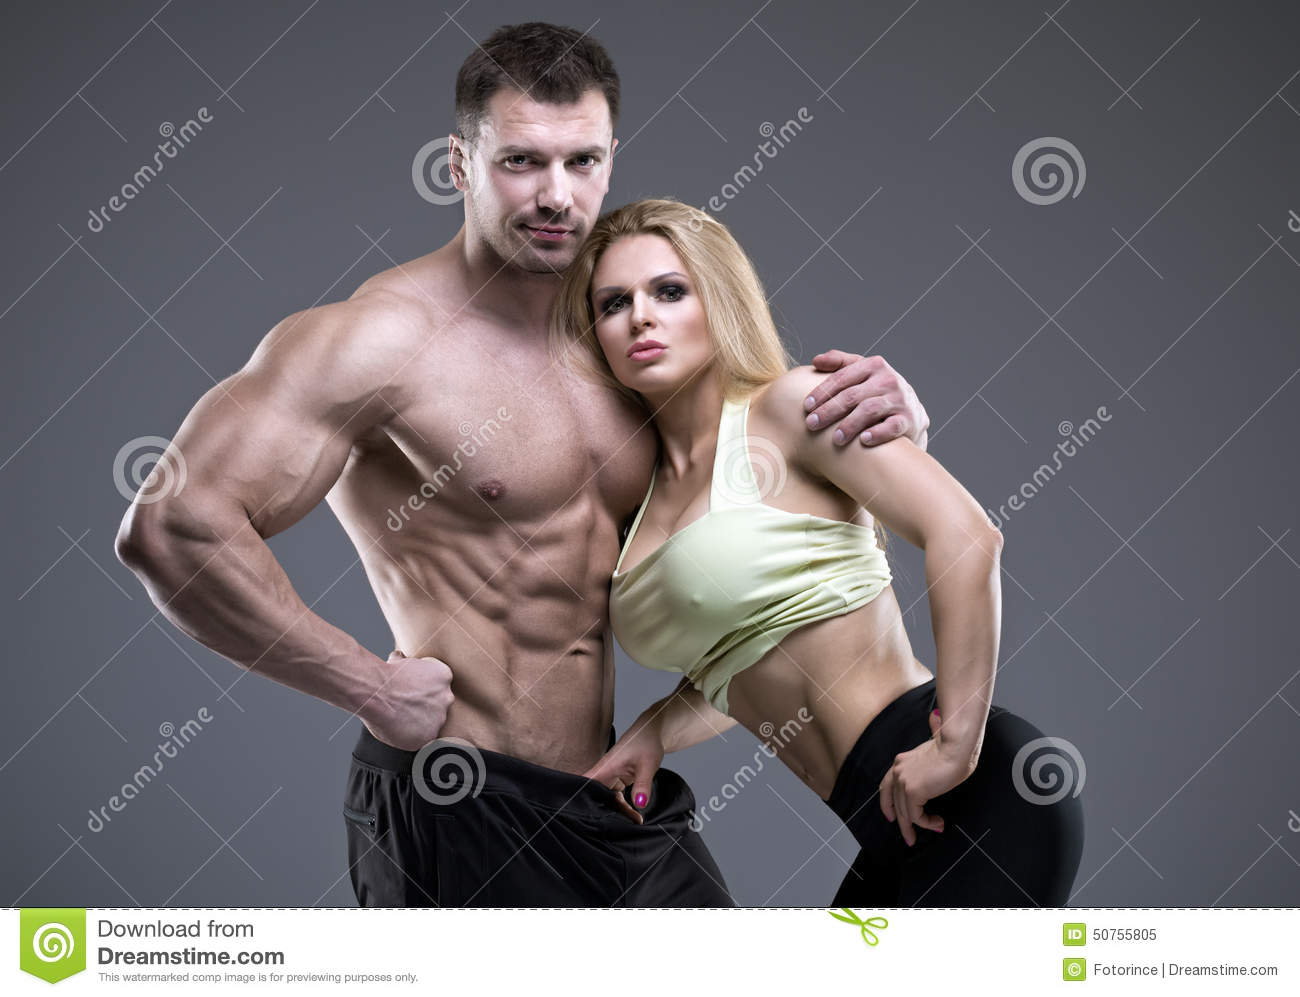 Sexy people